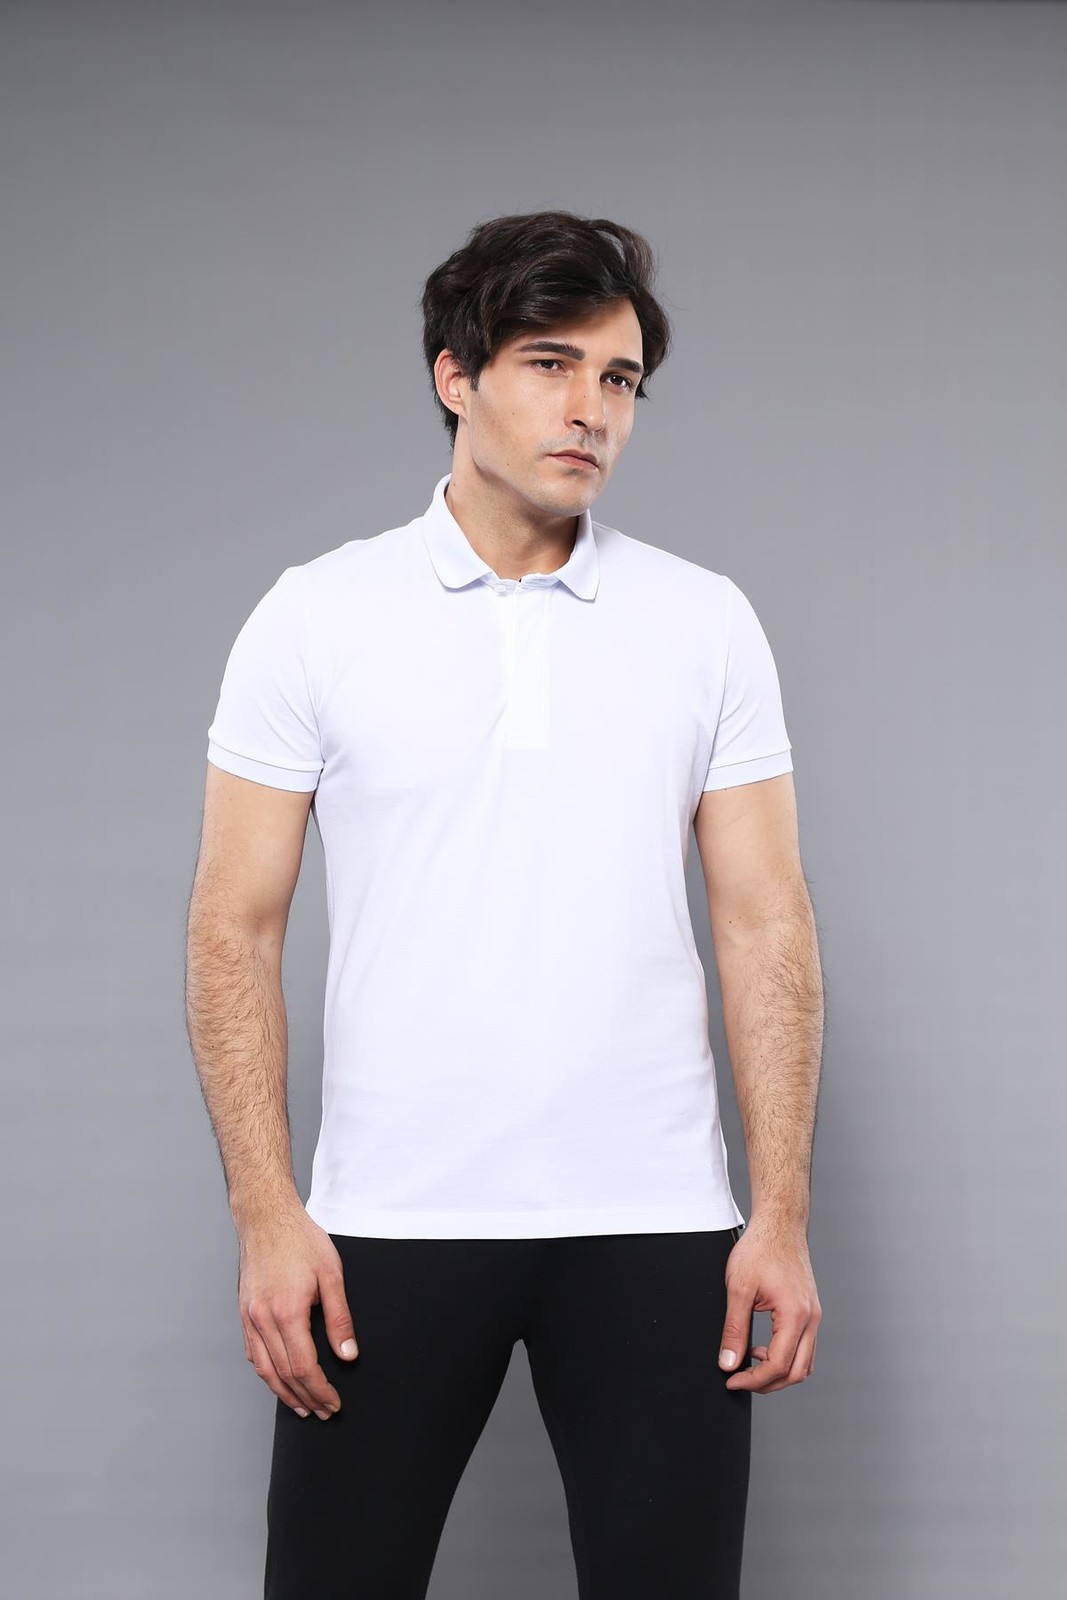 Men's Plain White Polo T-shirt